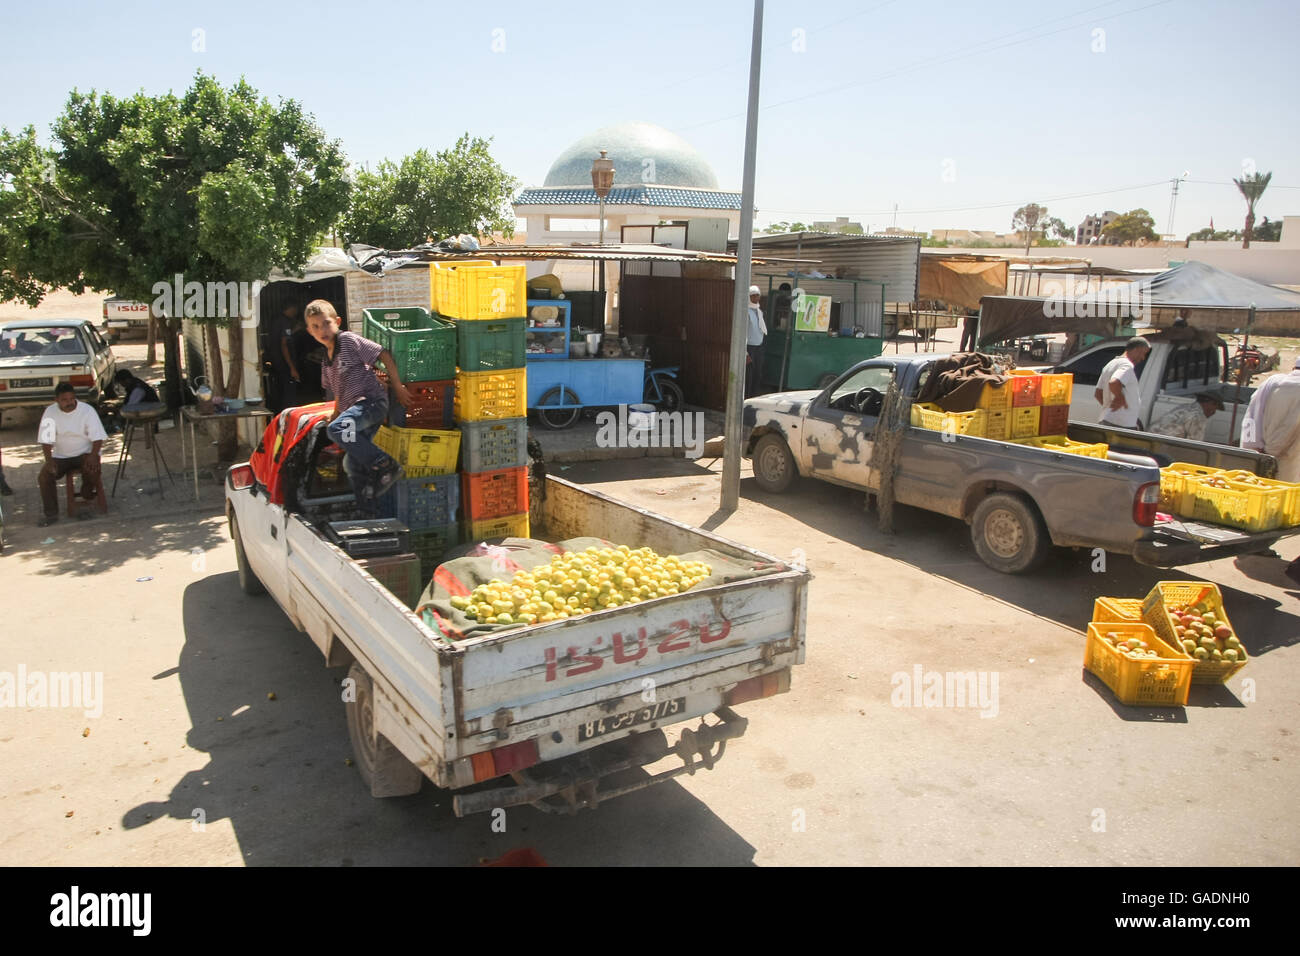 People packing groceries on pick up trucks at food market in